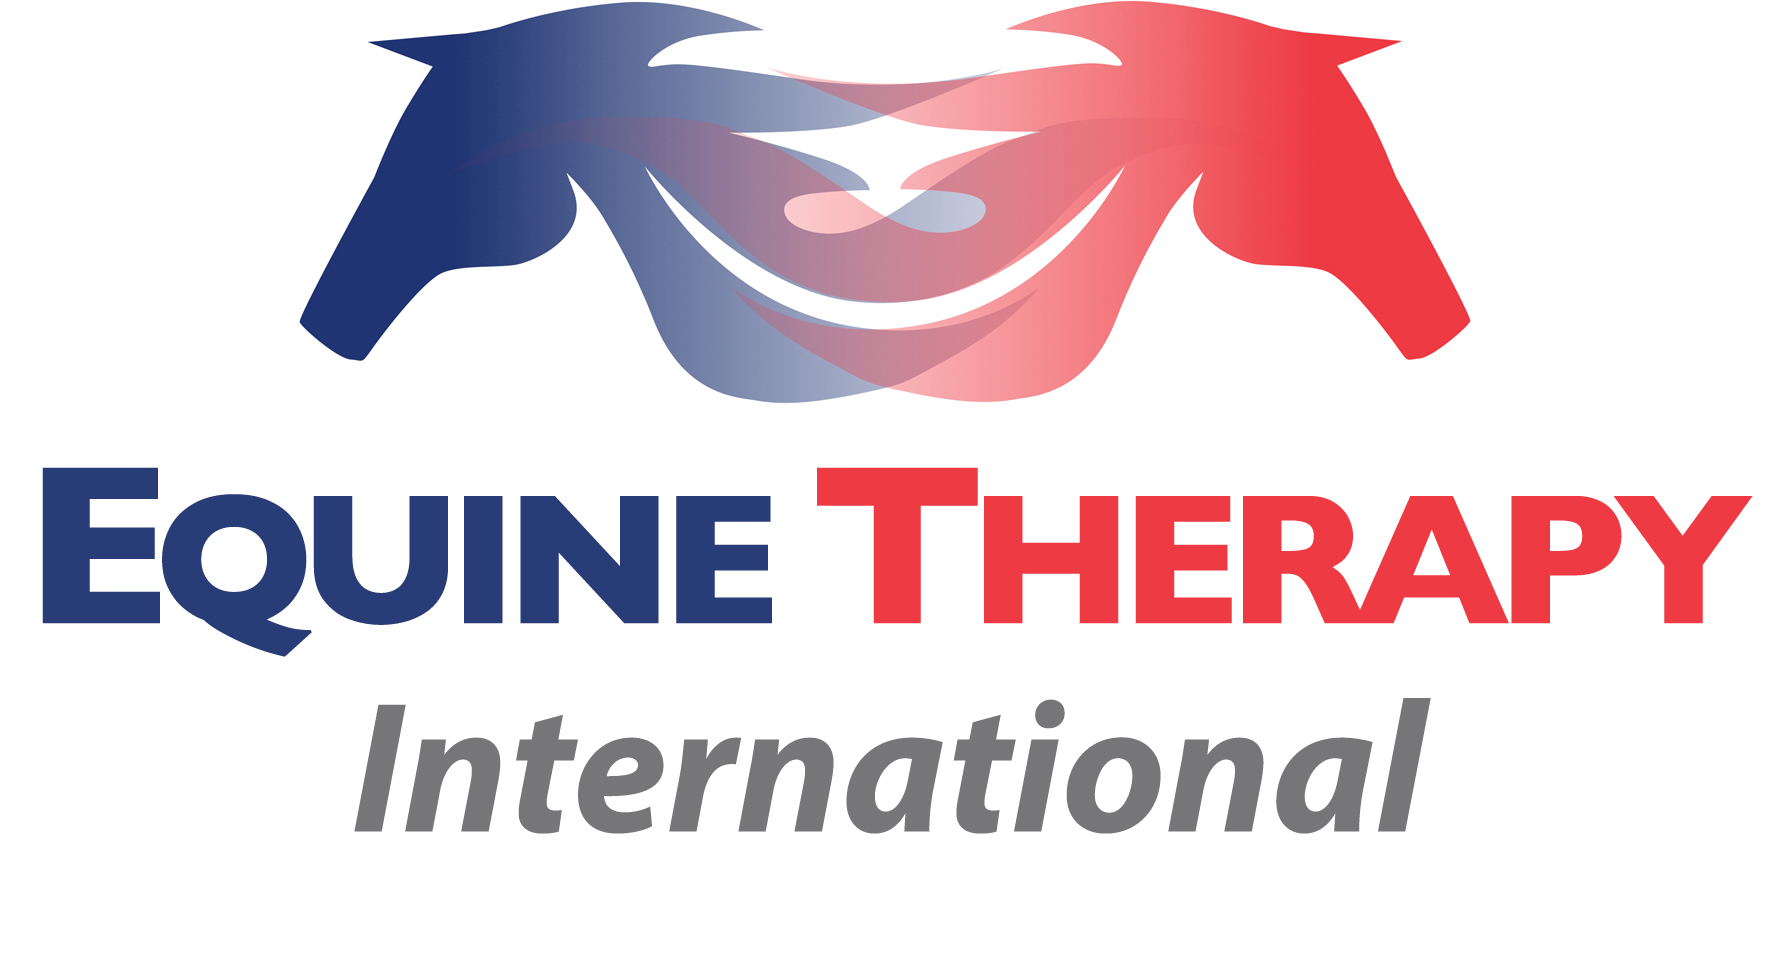 Equine Therapy International